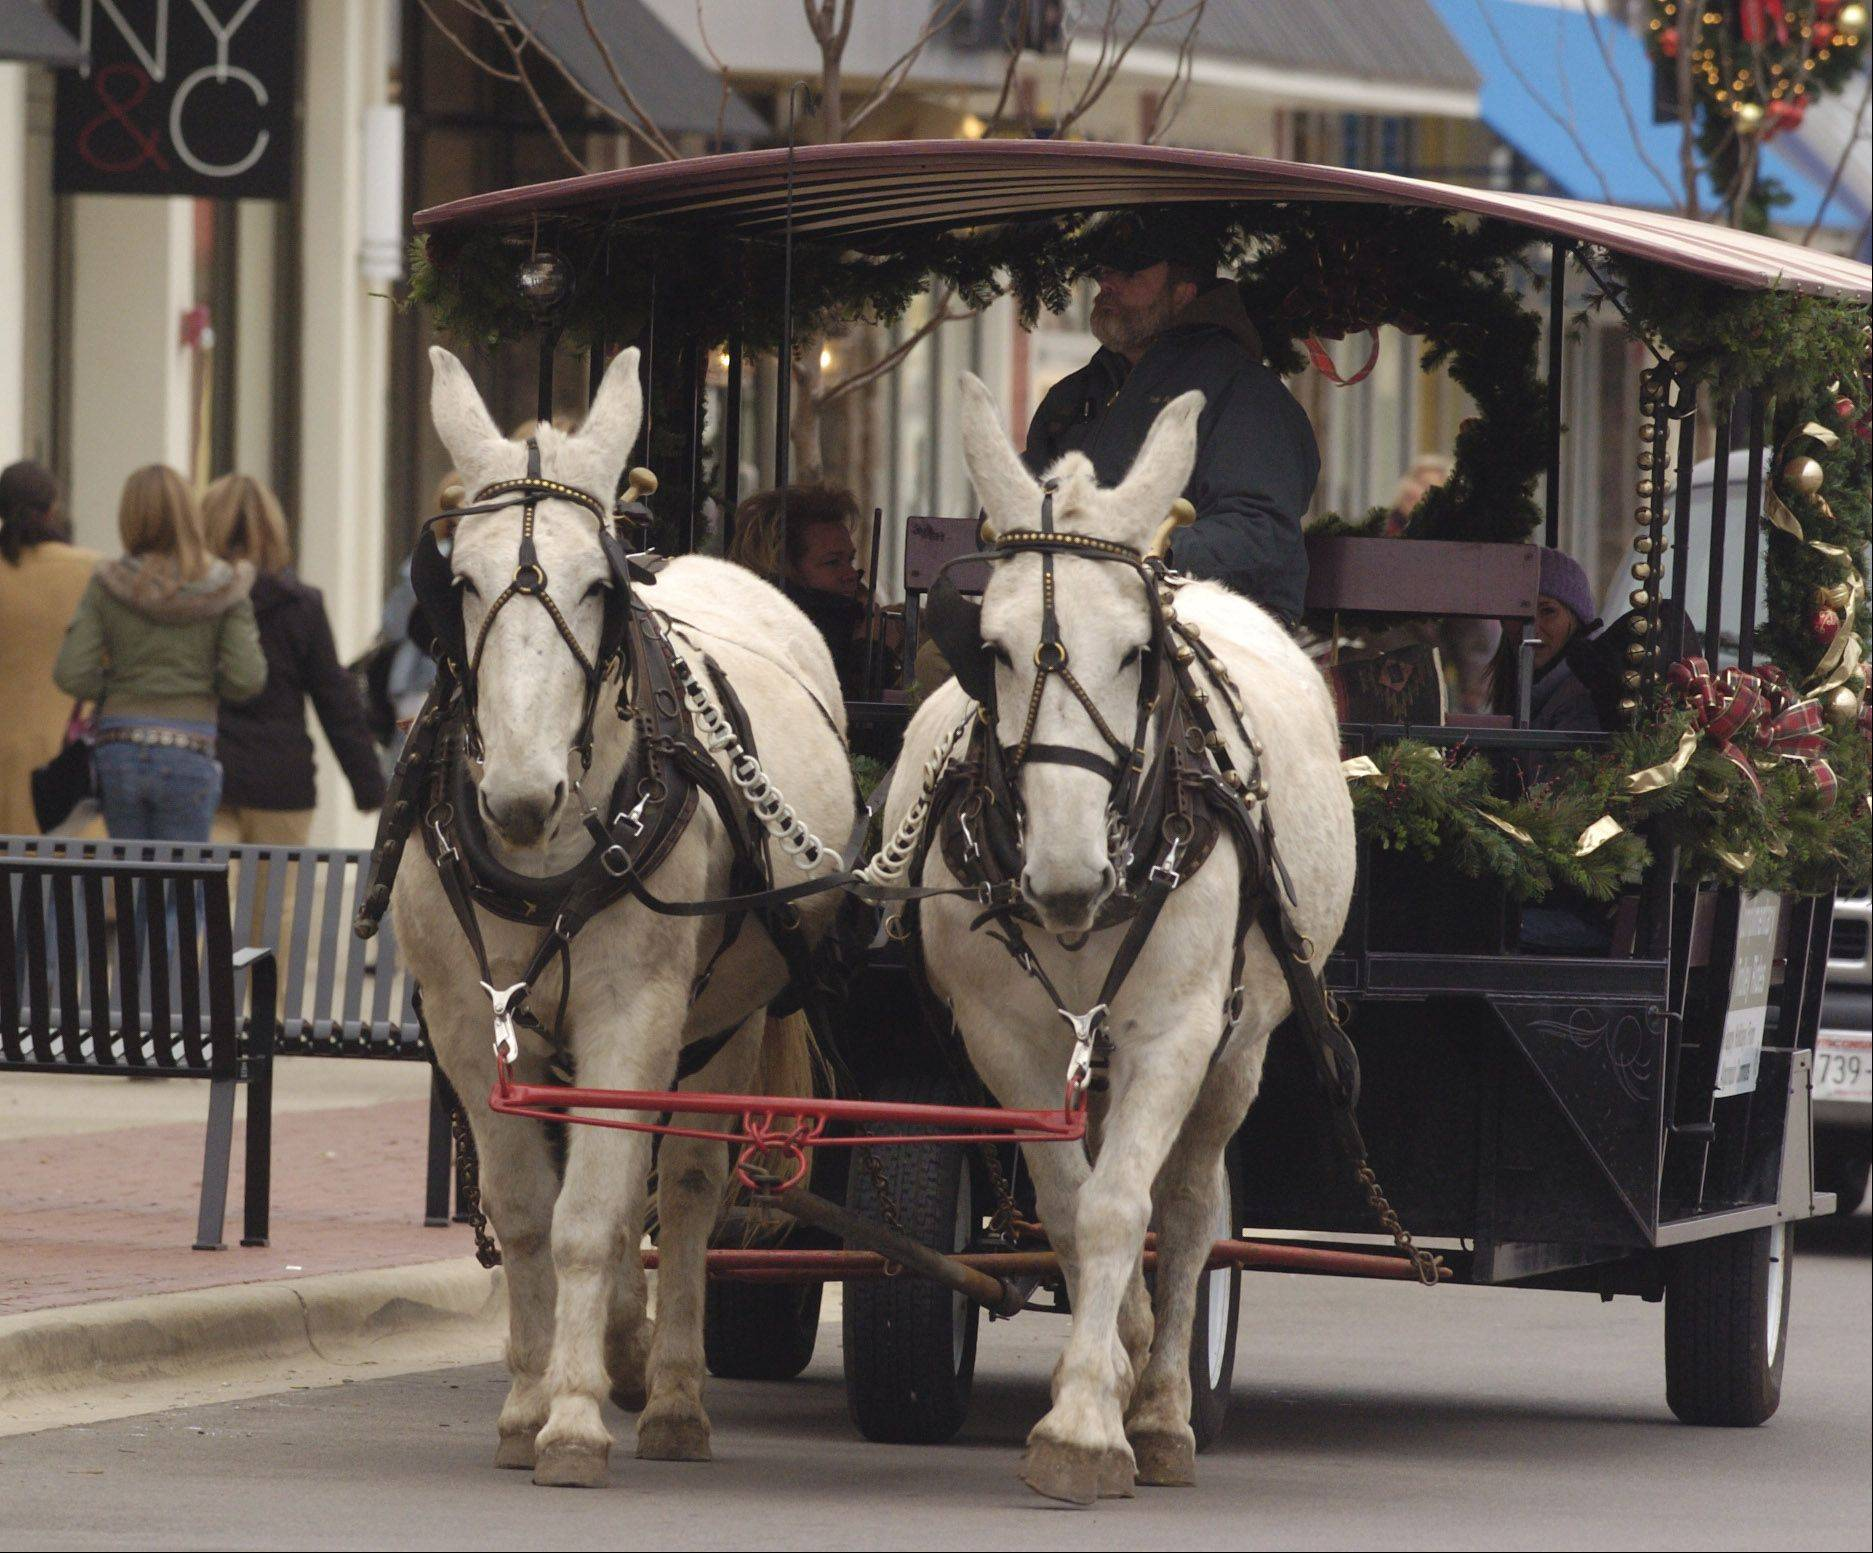 A horse-drawn carriage/trolley will take shoppers from store to store on Sunday afternoons at Geneva Commons this holiday season.